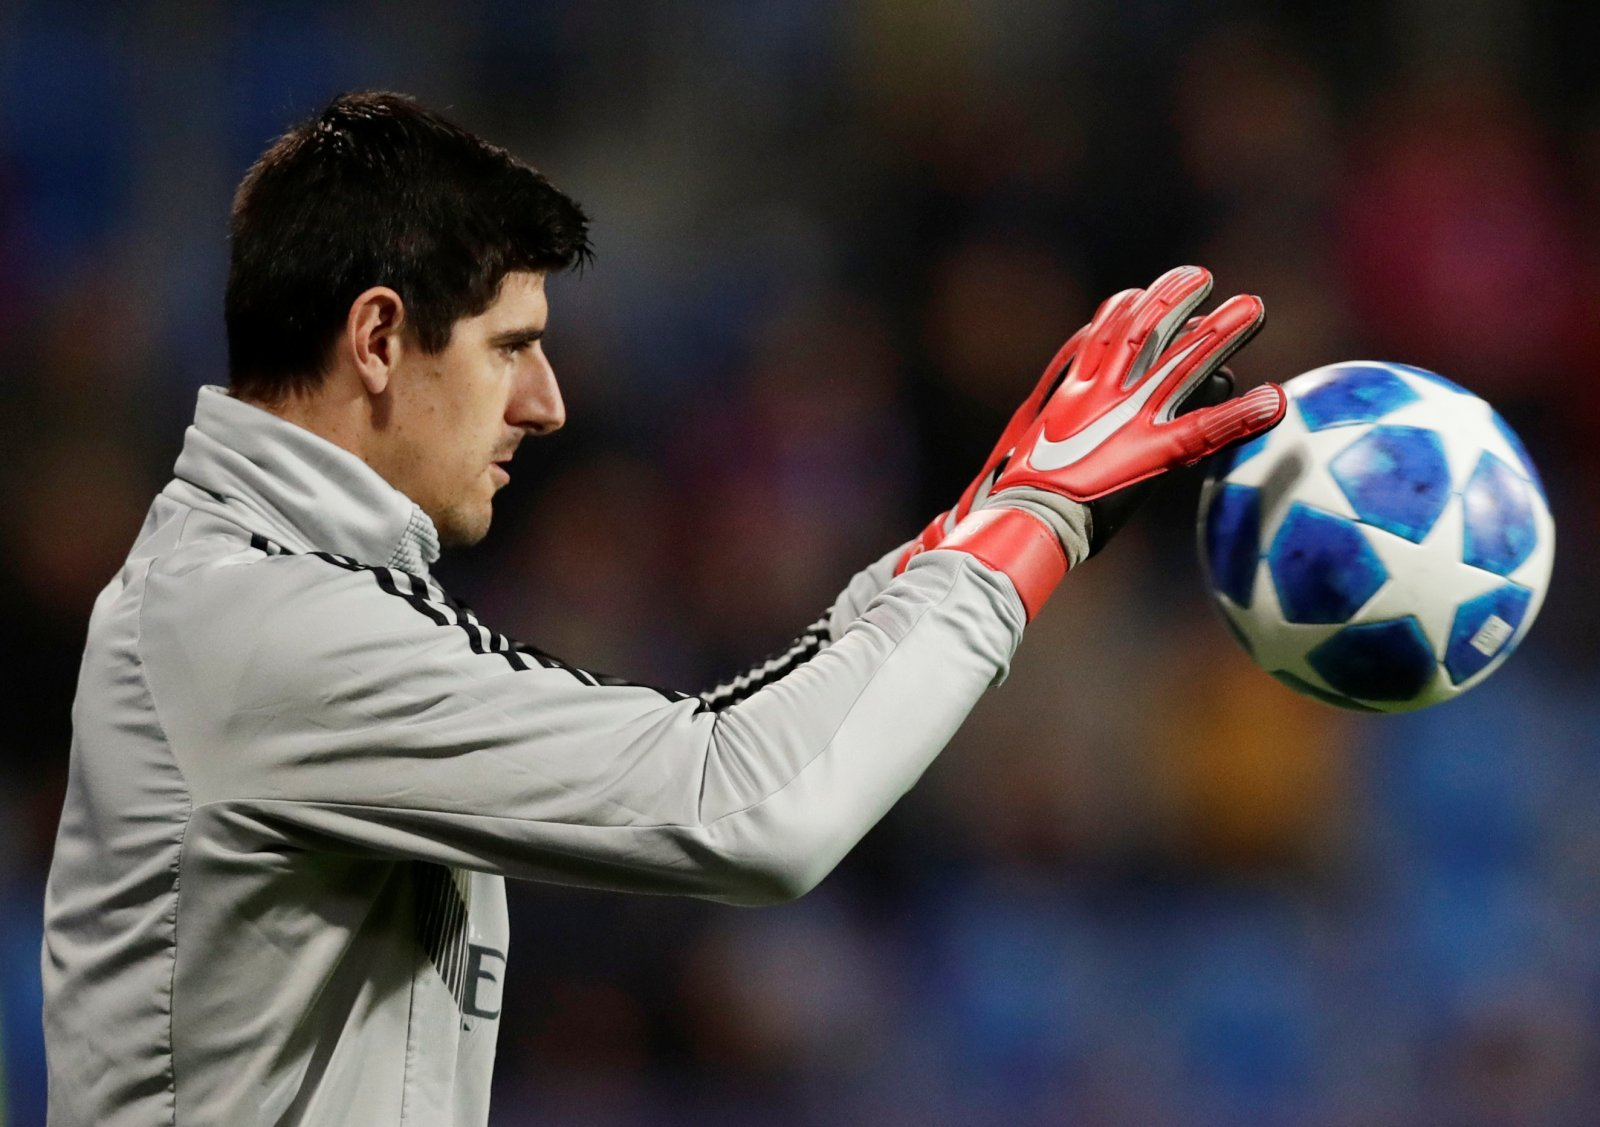 Chelsea fans couldn't help but laugh after UCL tie featuring Thibaut Courtois